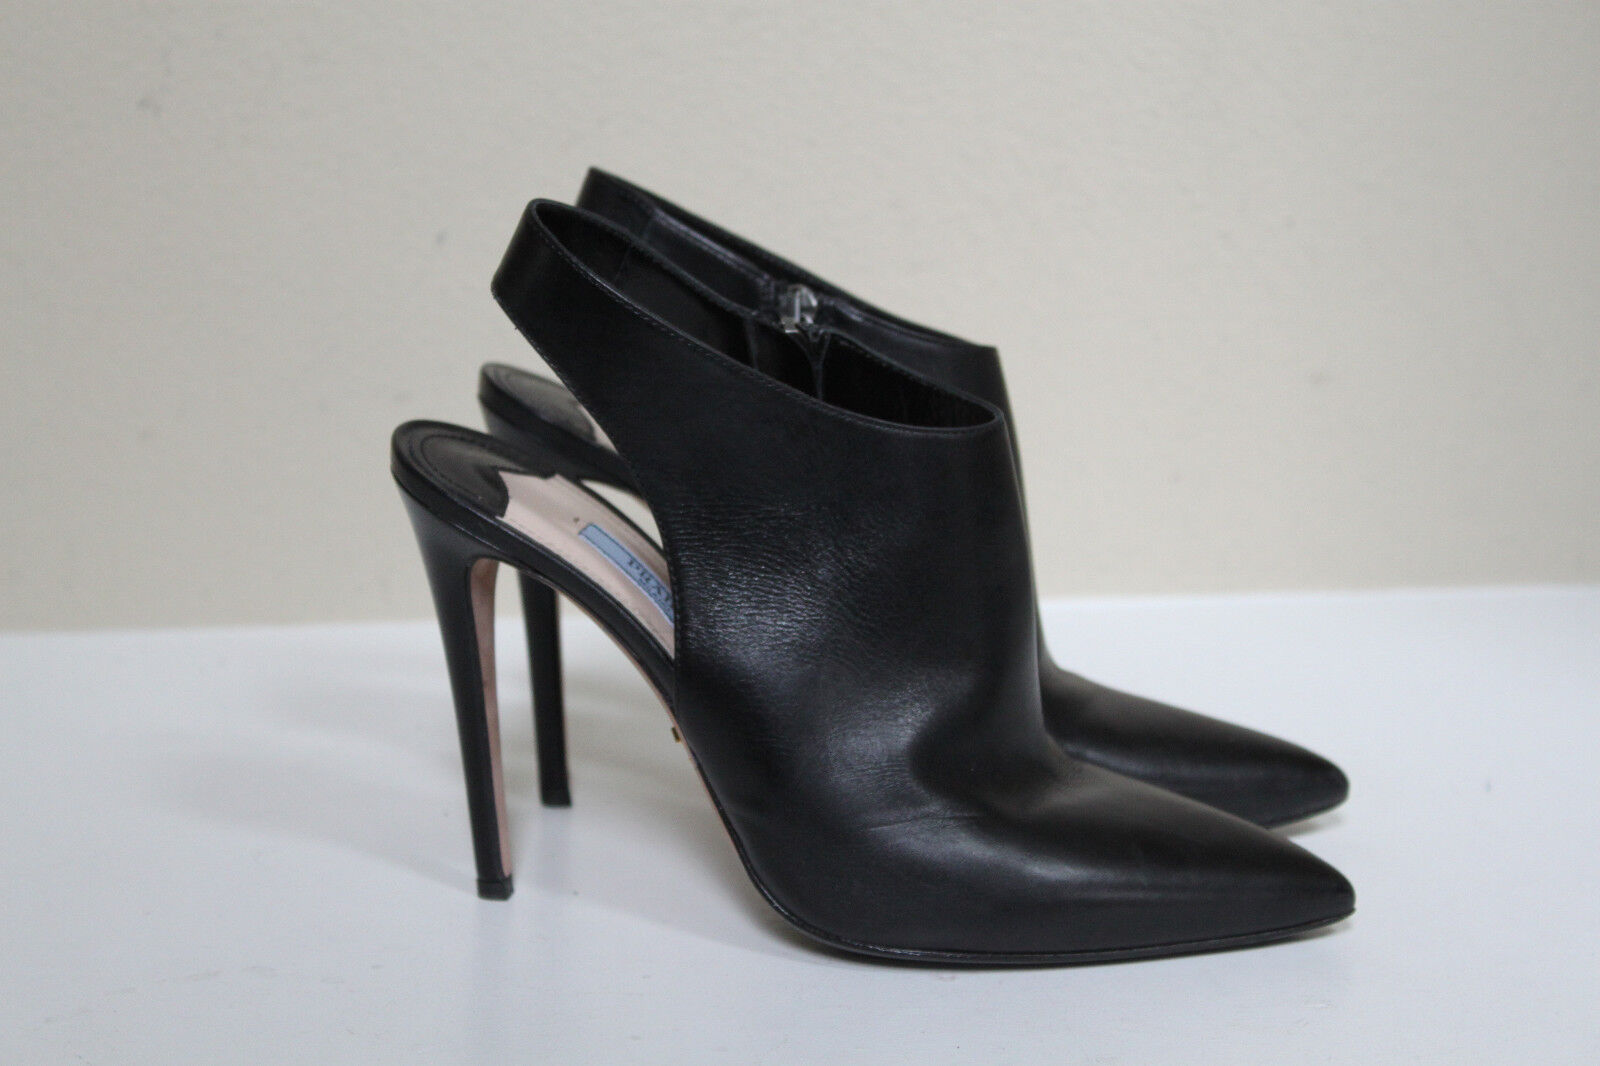 Prada sz 8.5   38.5 Black Leather Pointed Toe Classic Bootie Heel shoes